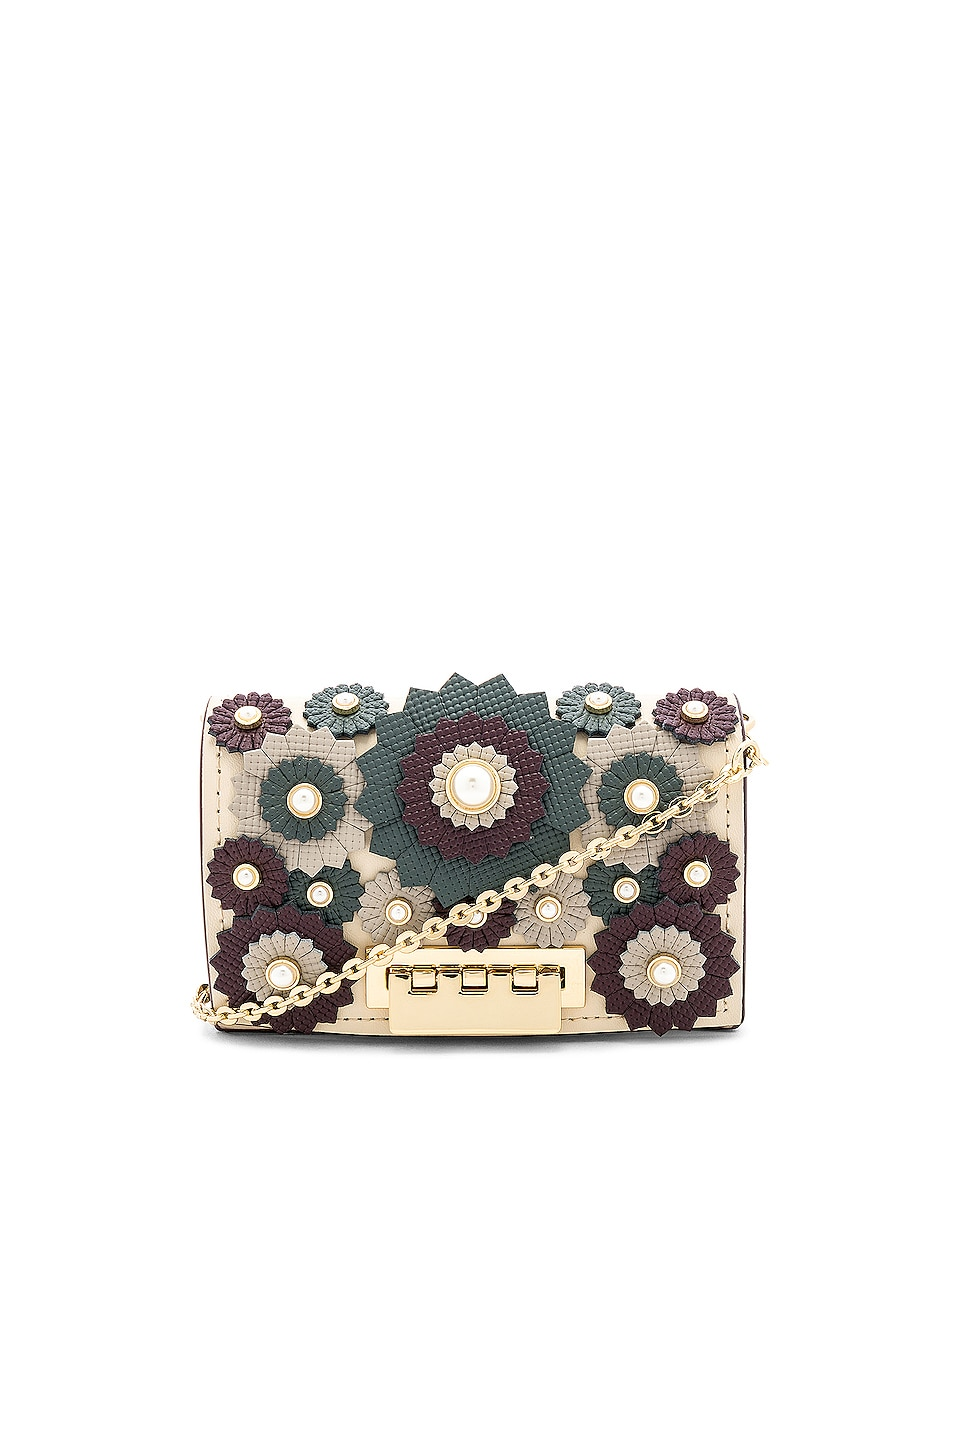 Zac Zac Posen Earthette Card Case With Chain in Ivory